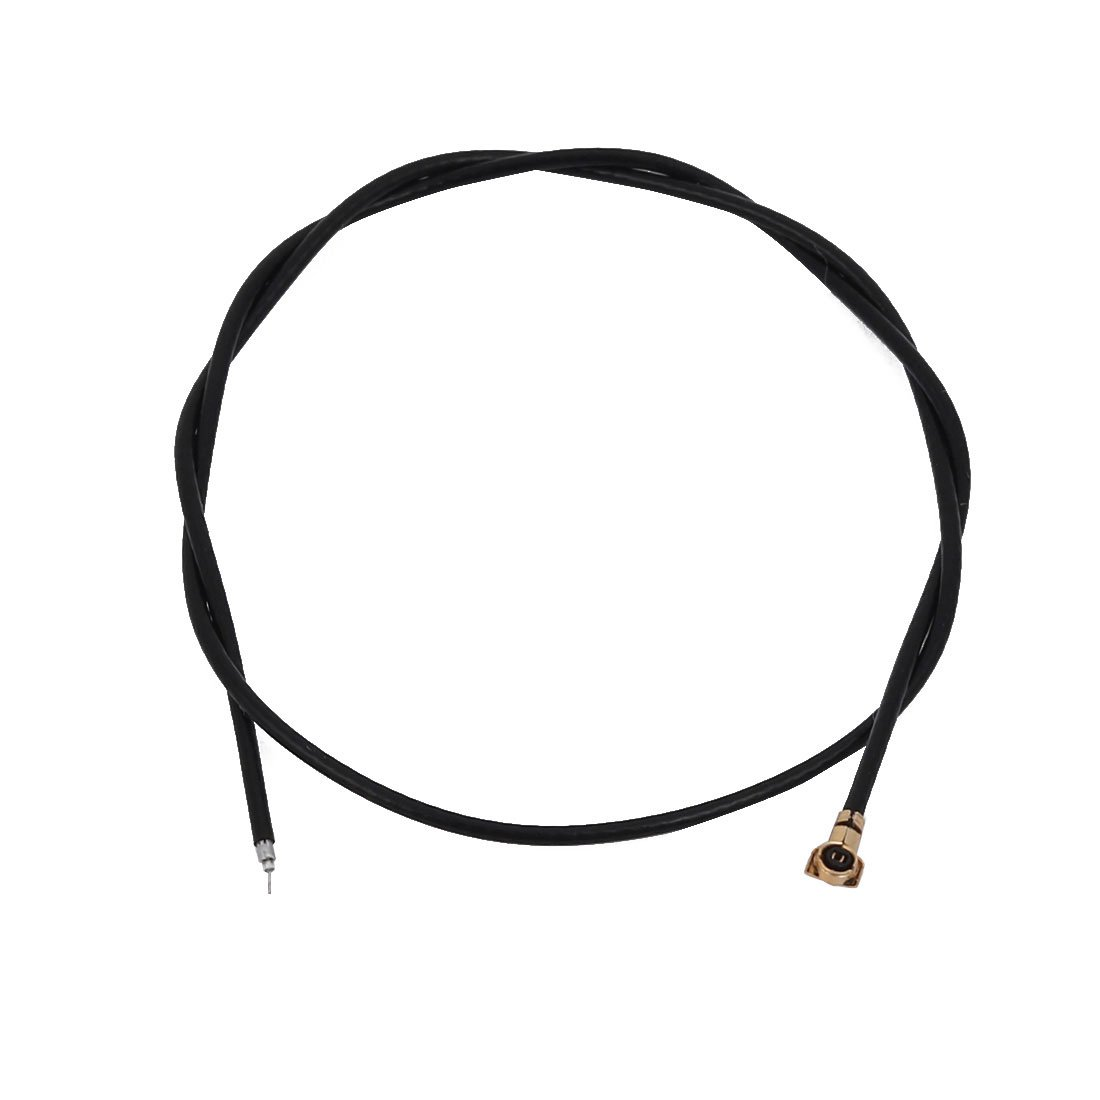 uxcell Pigtail Antenna RF0.81 IPEX 4.0 Connector Extension Solder Cable 20cm Long